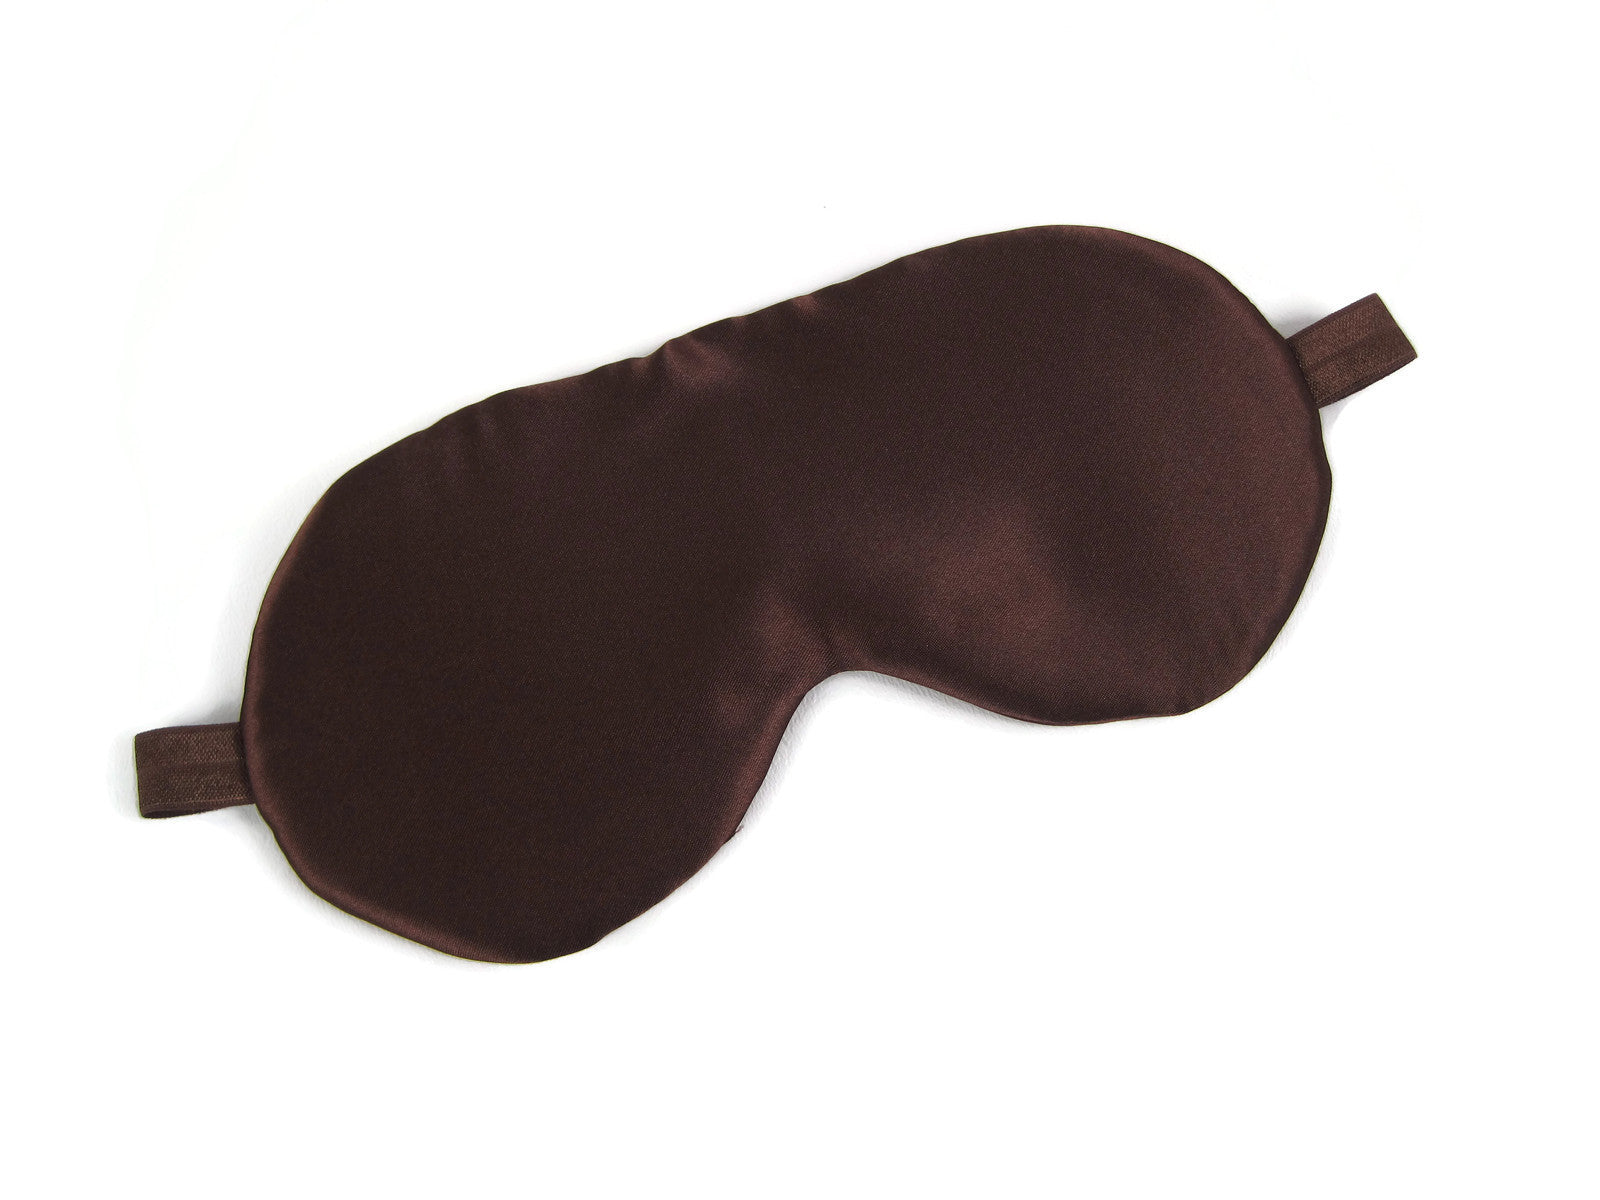 Satin Sleep Mask - Chocolate (Brown)